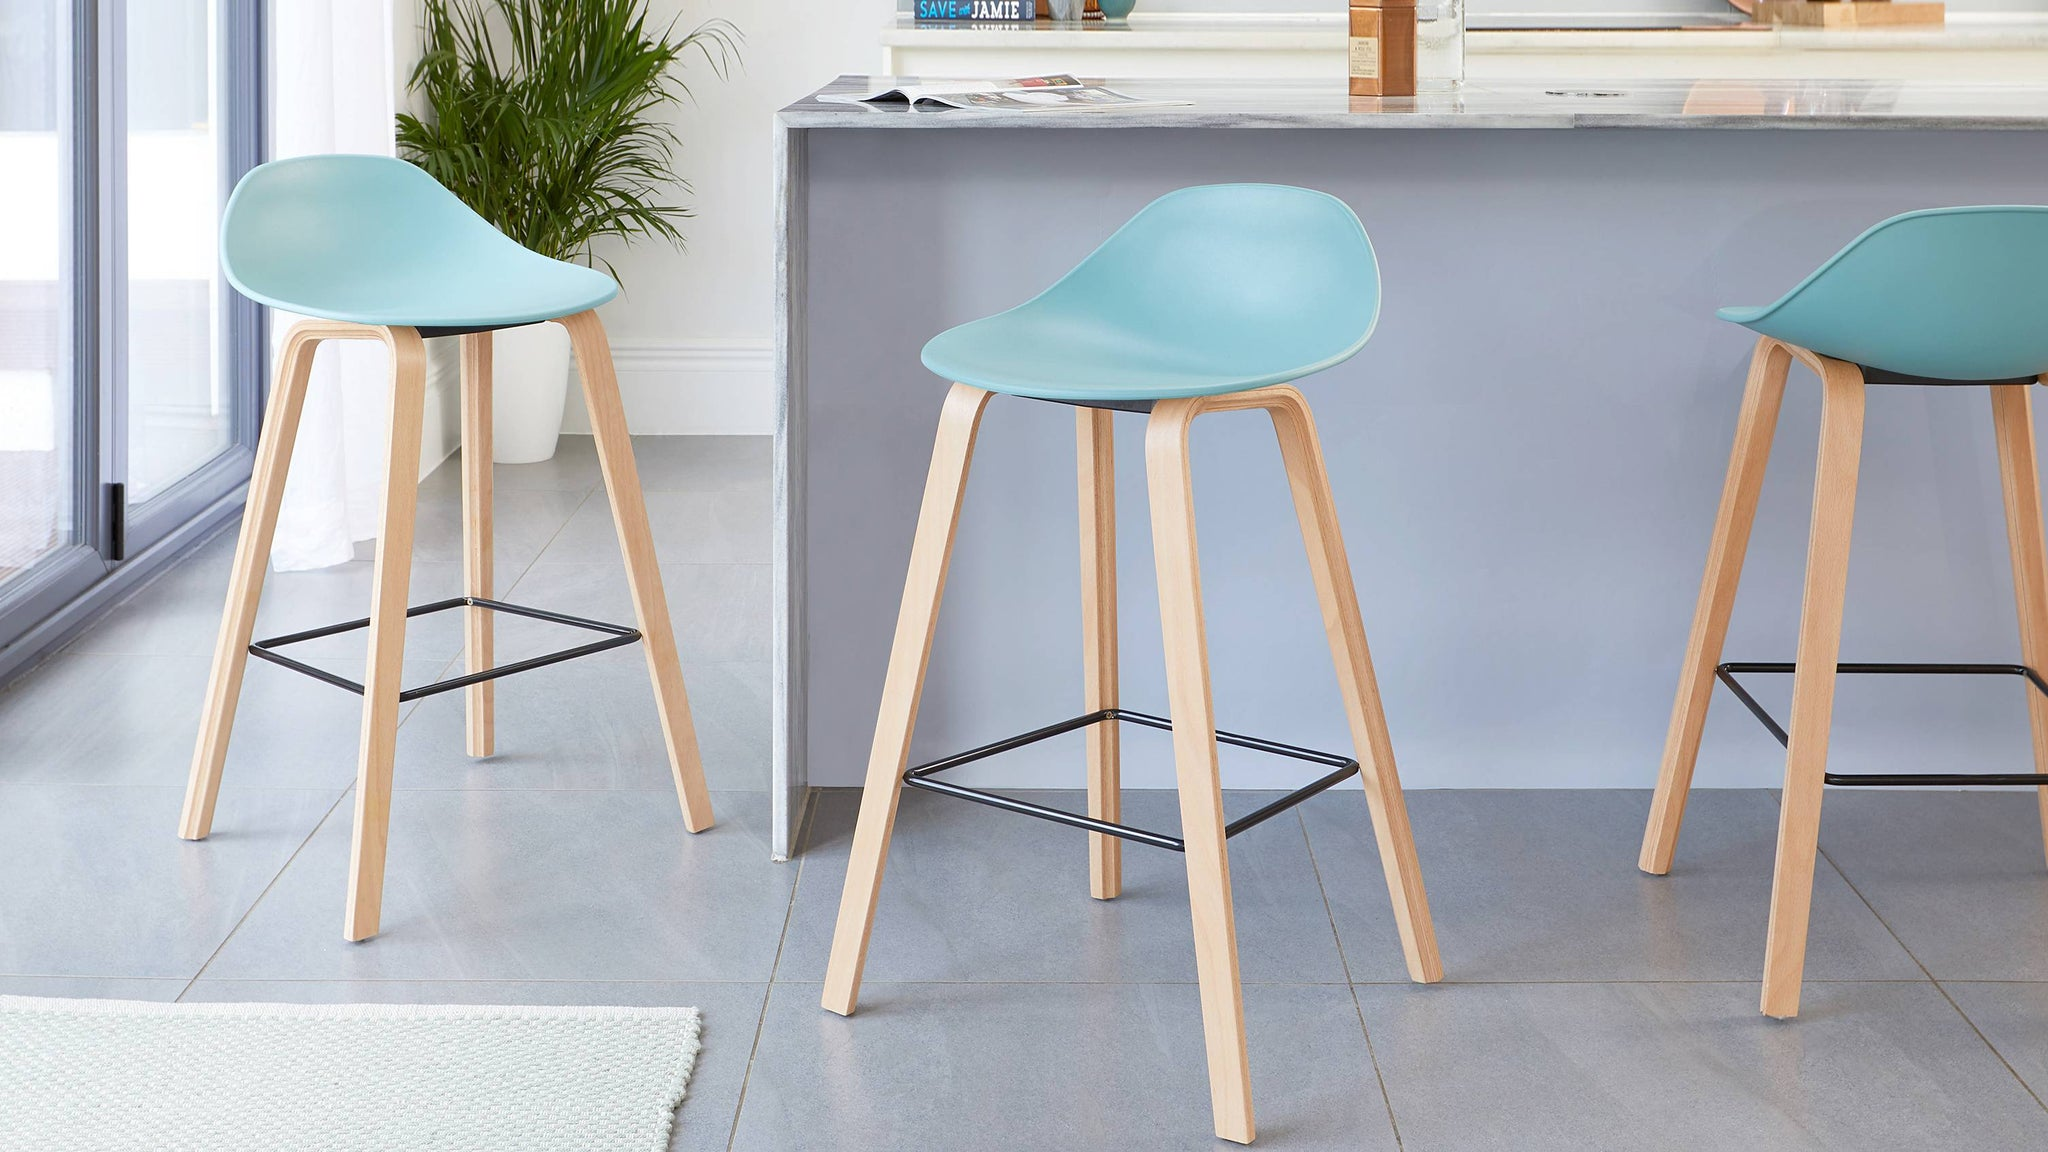 Aqua wooden bar stools